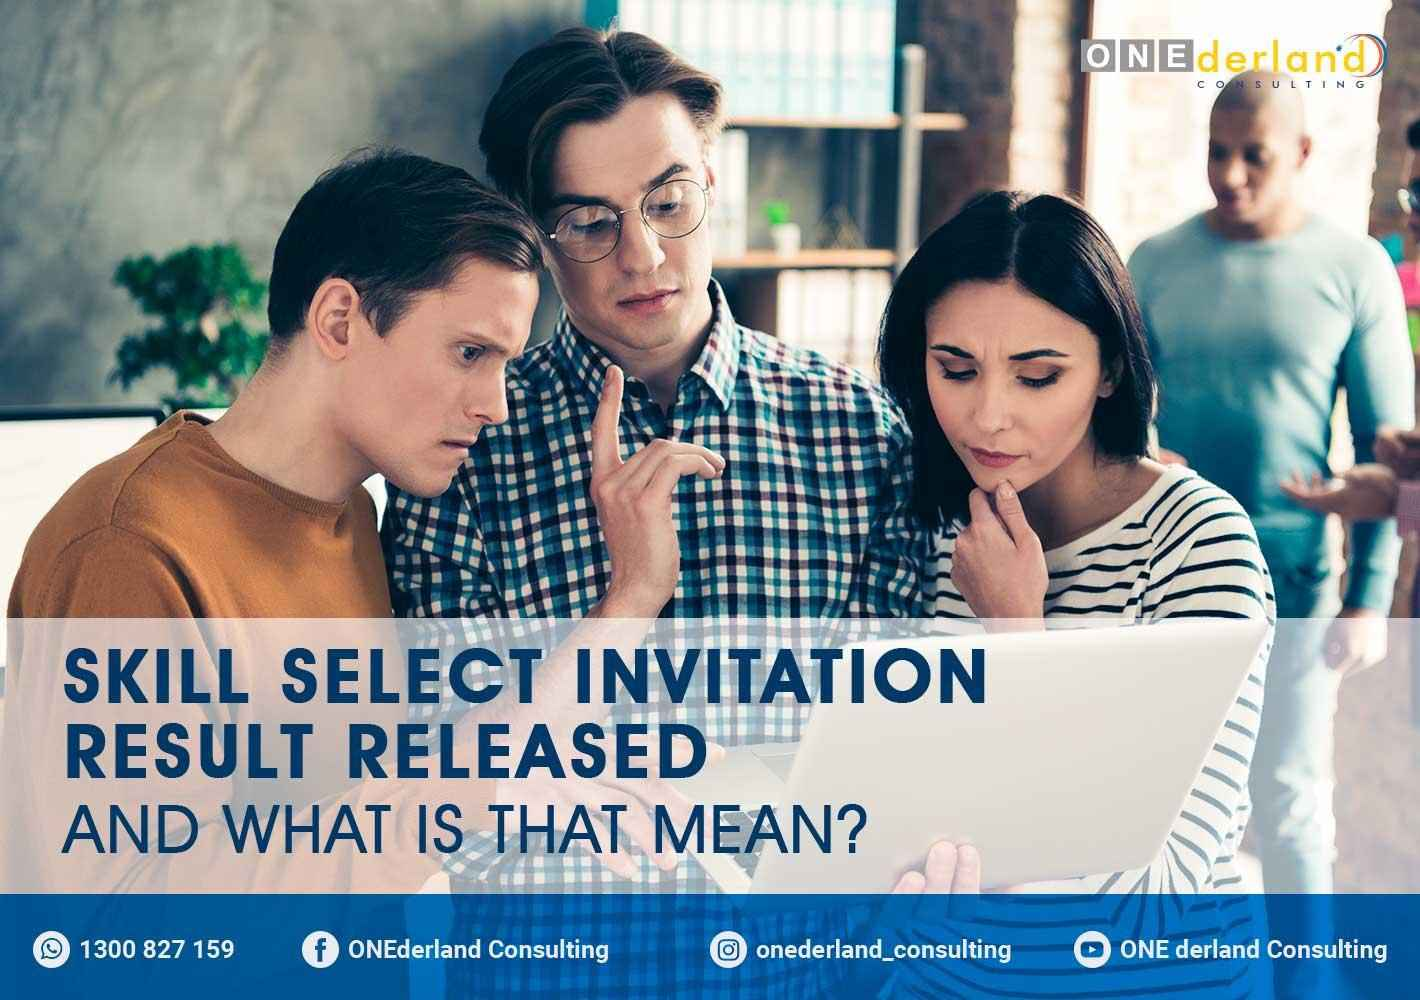 Skill Select Invitation Result Released And What Does This Mean?